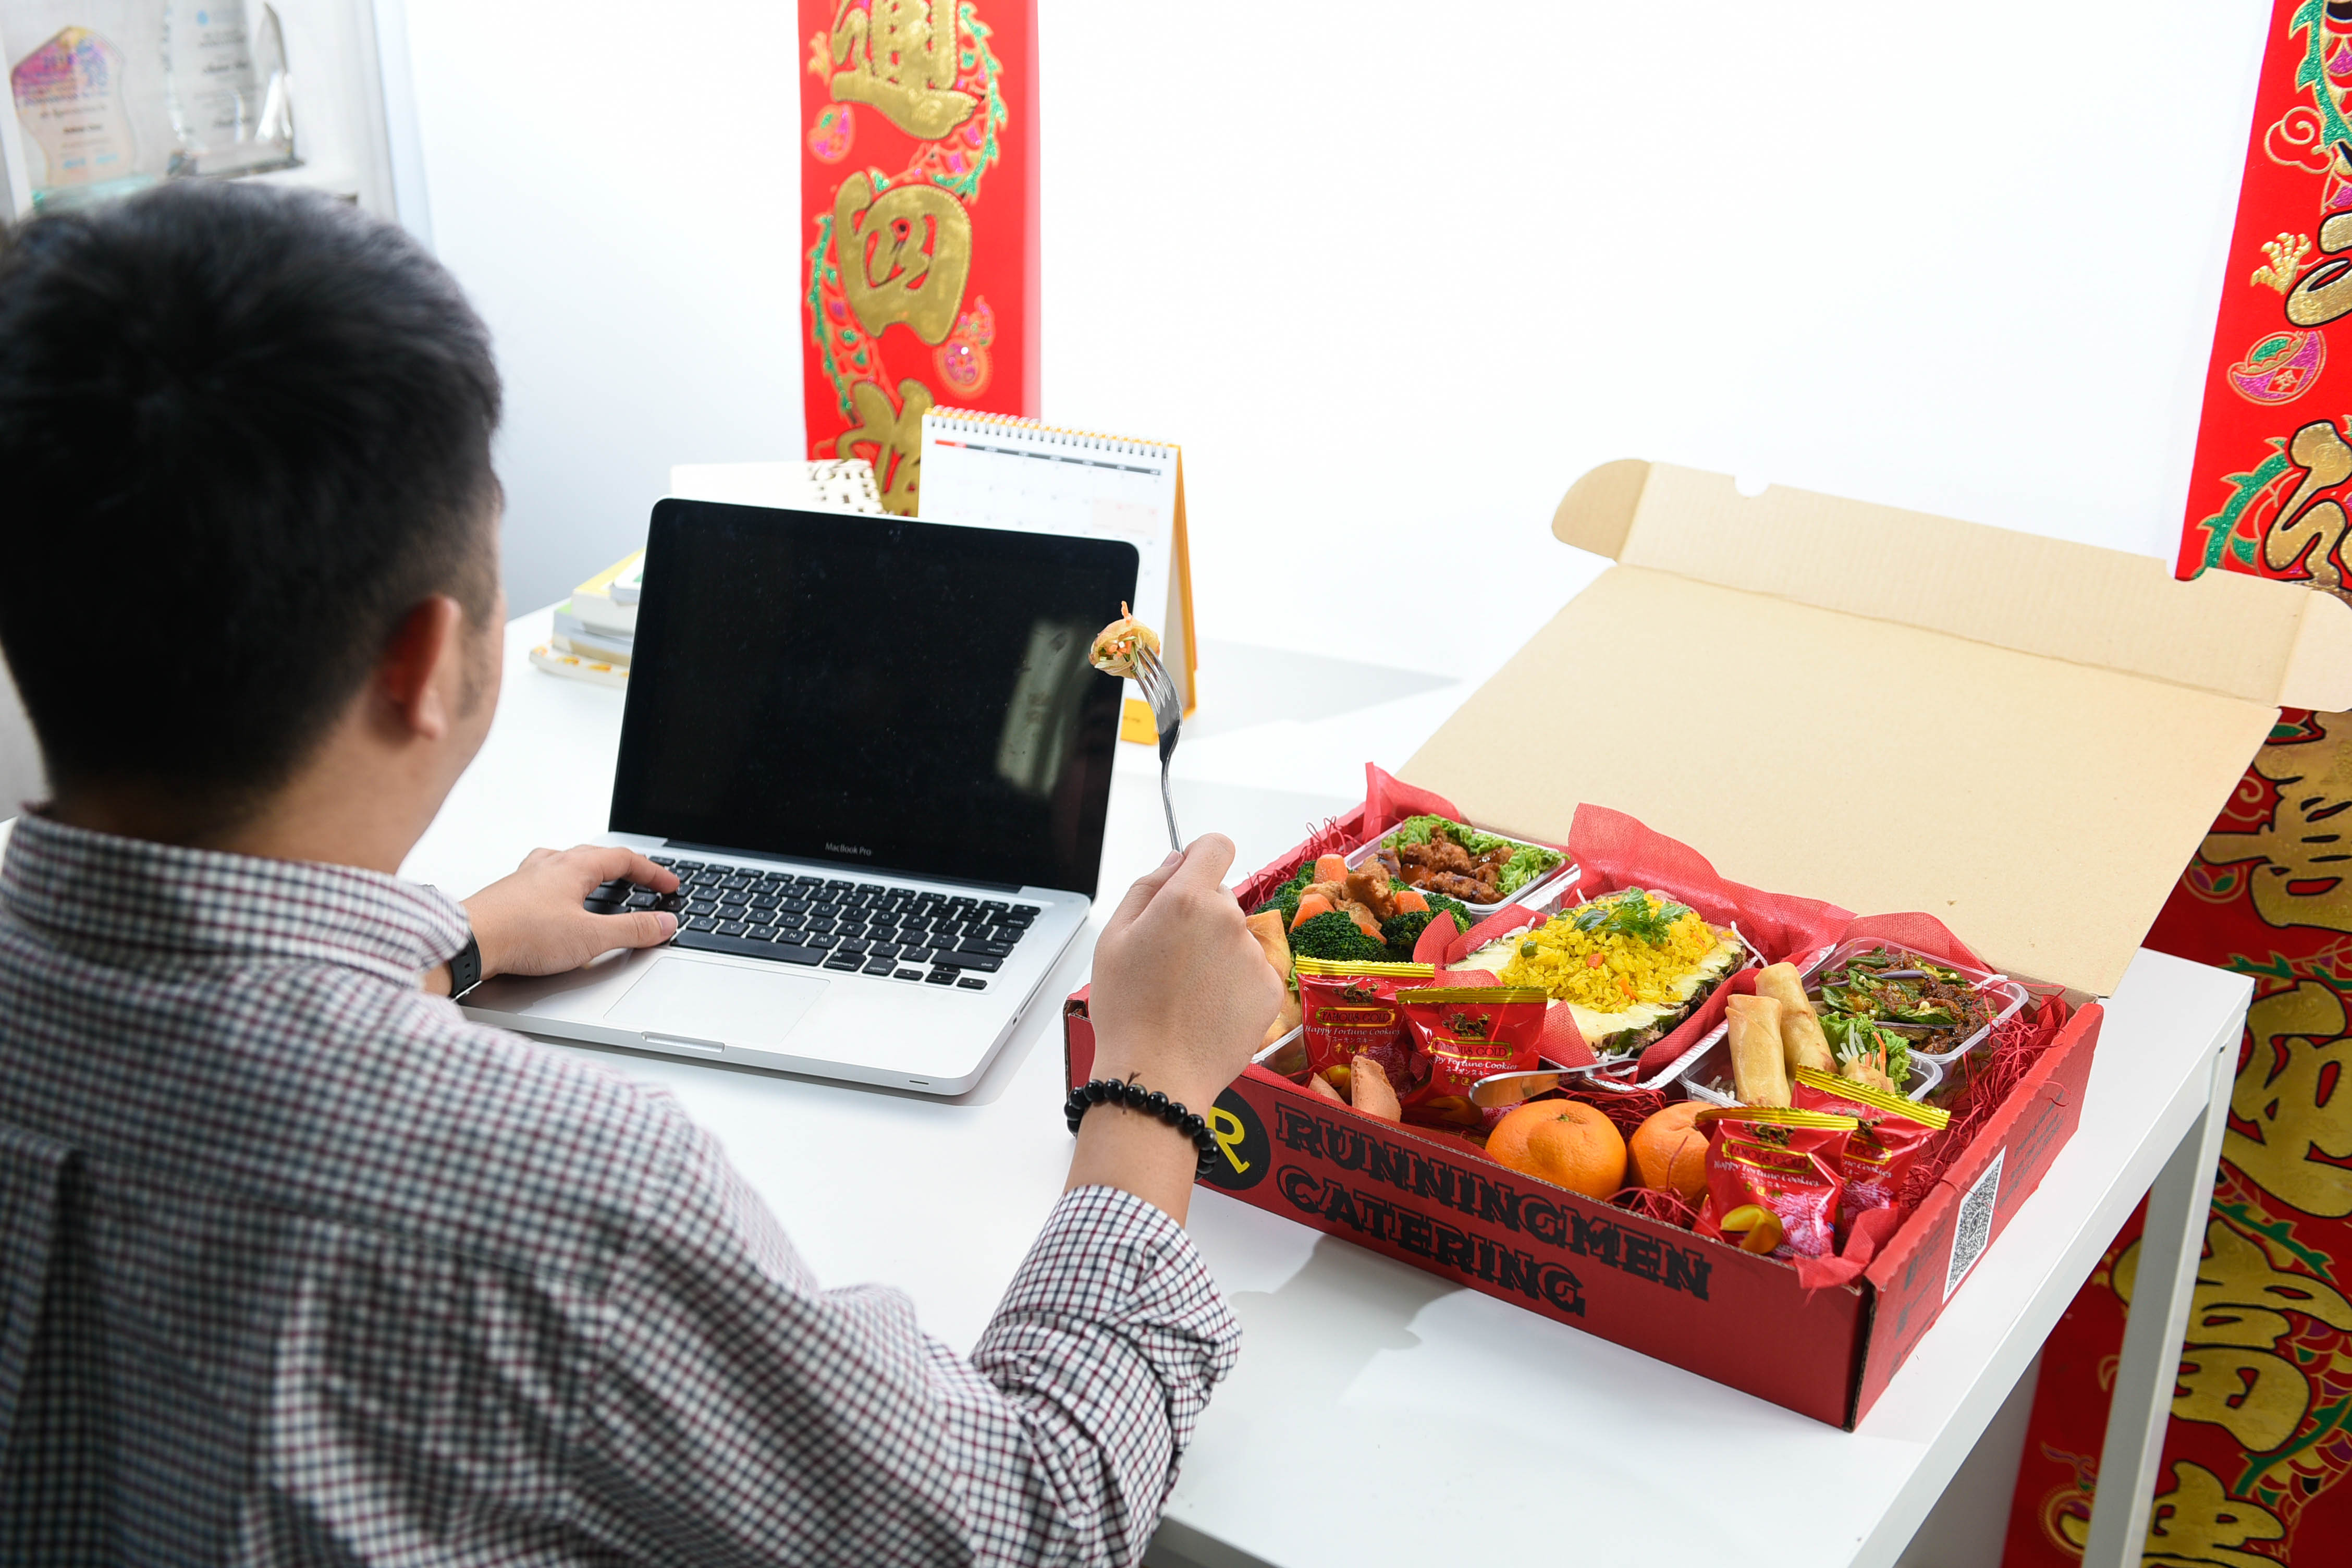 runningmen catering foodie box for corporate with man having virtual party 3